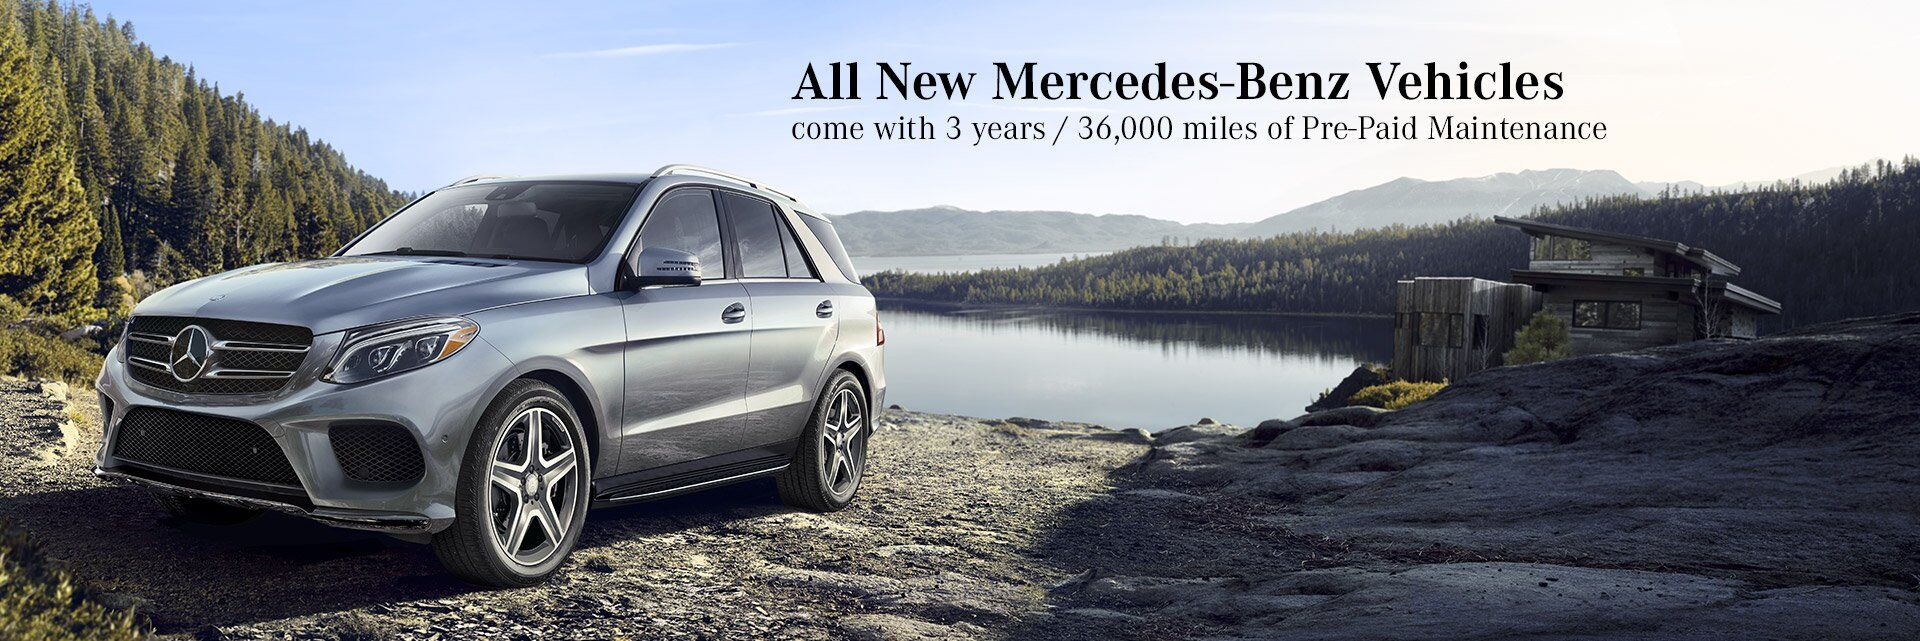 Mercedes benz dealership kansas city mo used cars for Mercedes benz kansas city